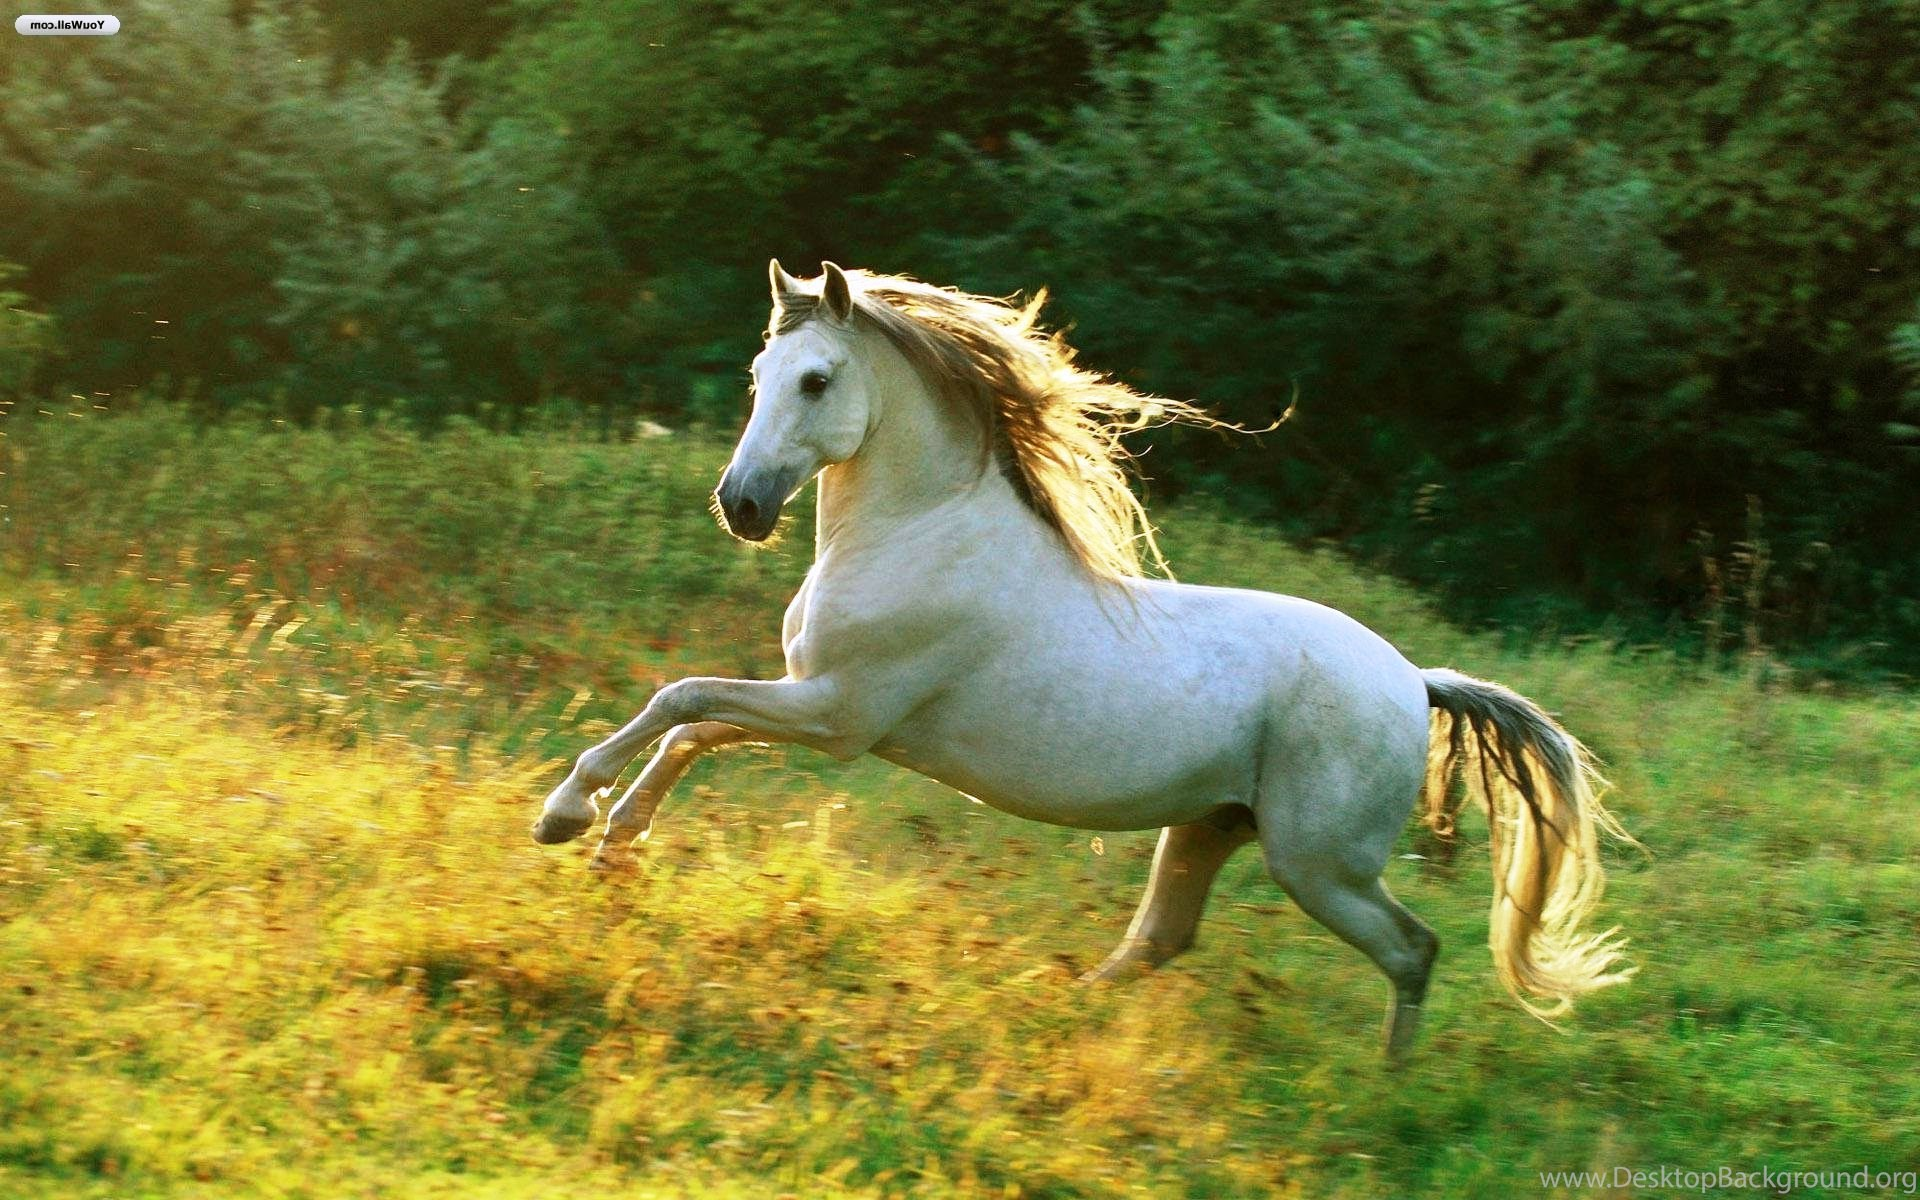 White running horses - photo#29